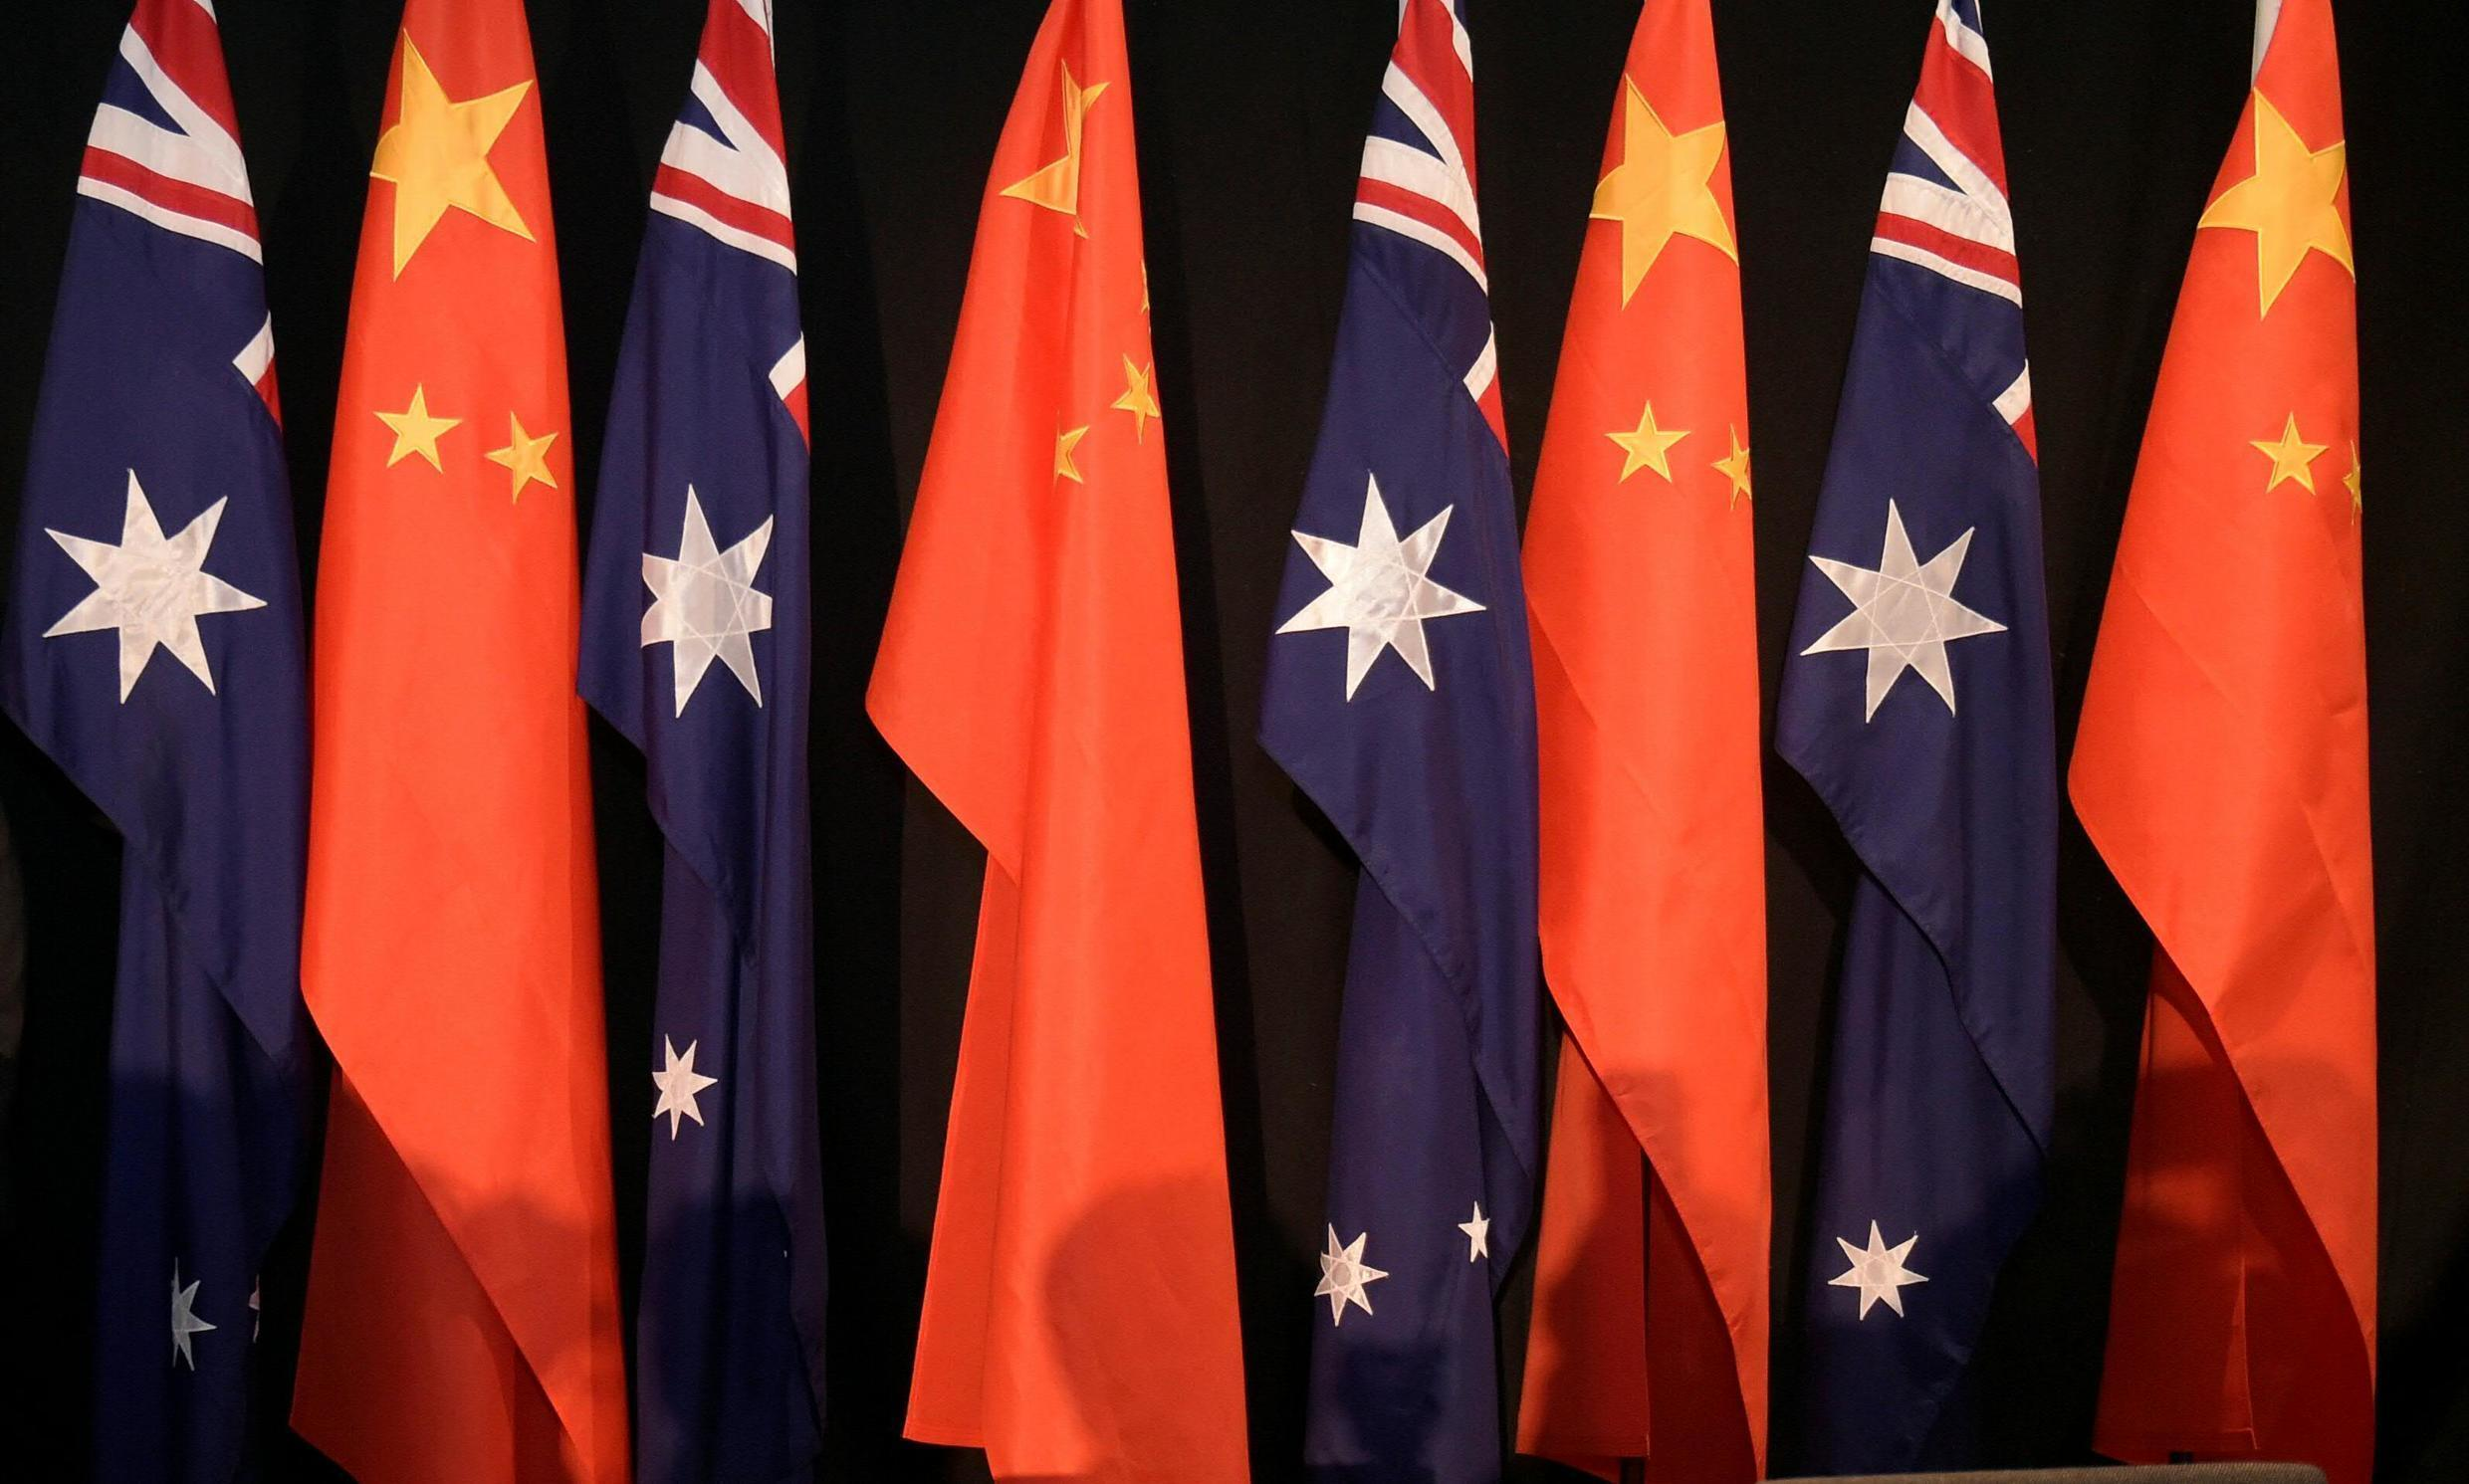 This file photo taken on June 17, 2015 shows national flags of China and Australia during a signing ceremony in Canberra. China on May 6, 2021 suspended an economic agreement with Australia, worsening an already-troubled relationship fractured by spats over the Covid-19 pandemic and human rights abuses.